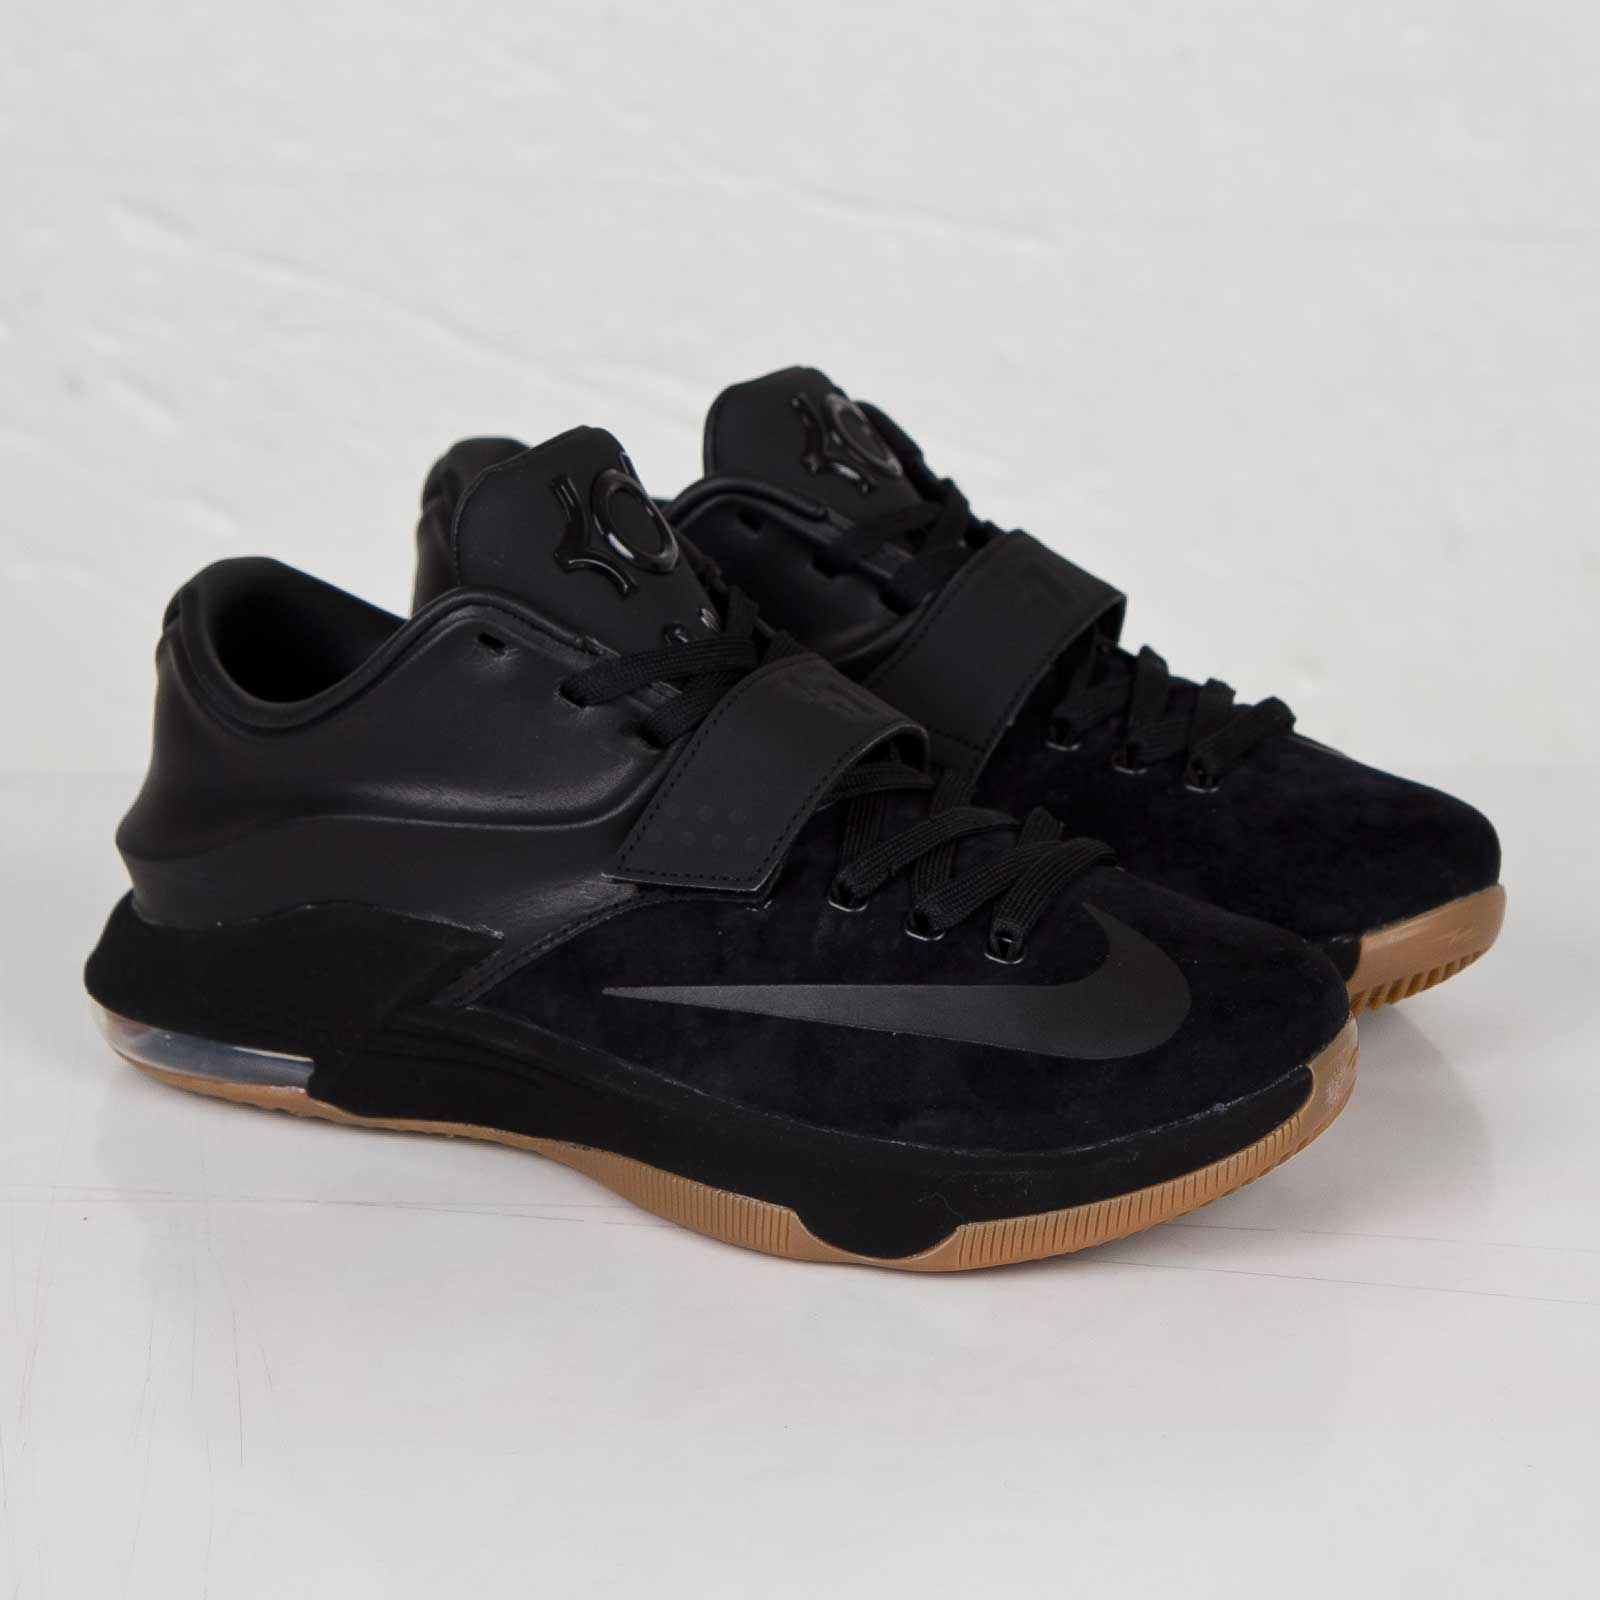 competitive price 158d5 9b22d Nike KD VII EXT Suede QS - 717593-001 - Sneakersnstuff | sneakers ...